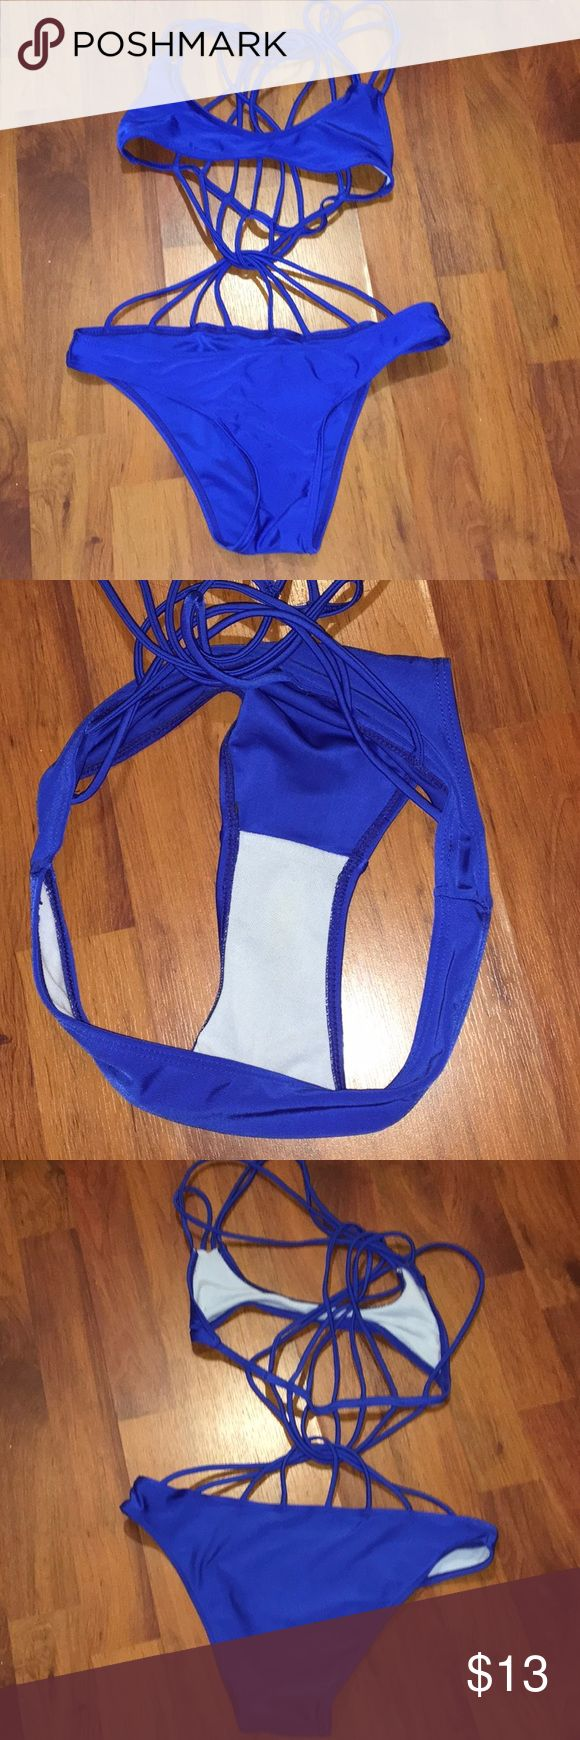 Blue strapped back bikini NOT ACTUALLY MIKOH. TAGGED THE BRAND FOR EXPOSURE. I purchased it from a random website!! Super cute fits sizes extra small to small. PRICE IS DEFINITELY NEGOTIABLE Swim Bikinis